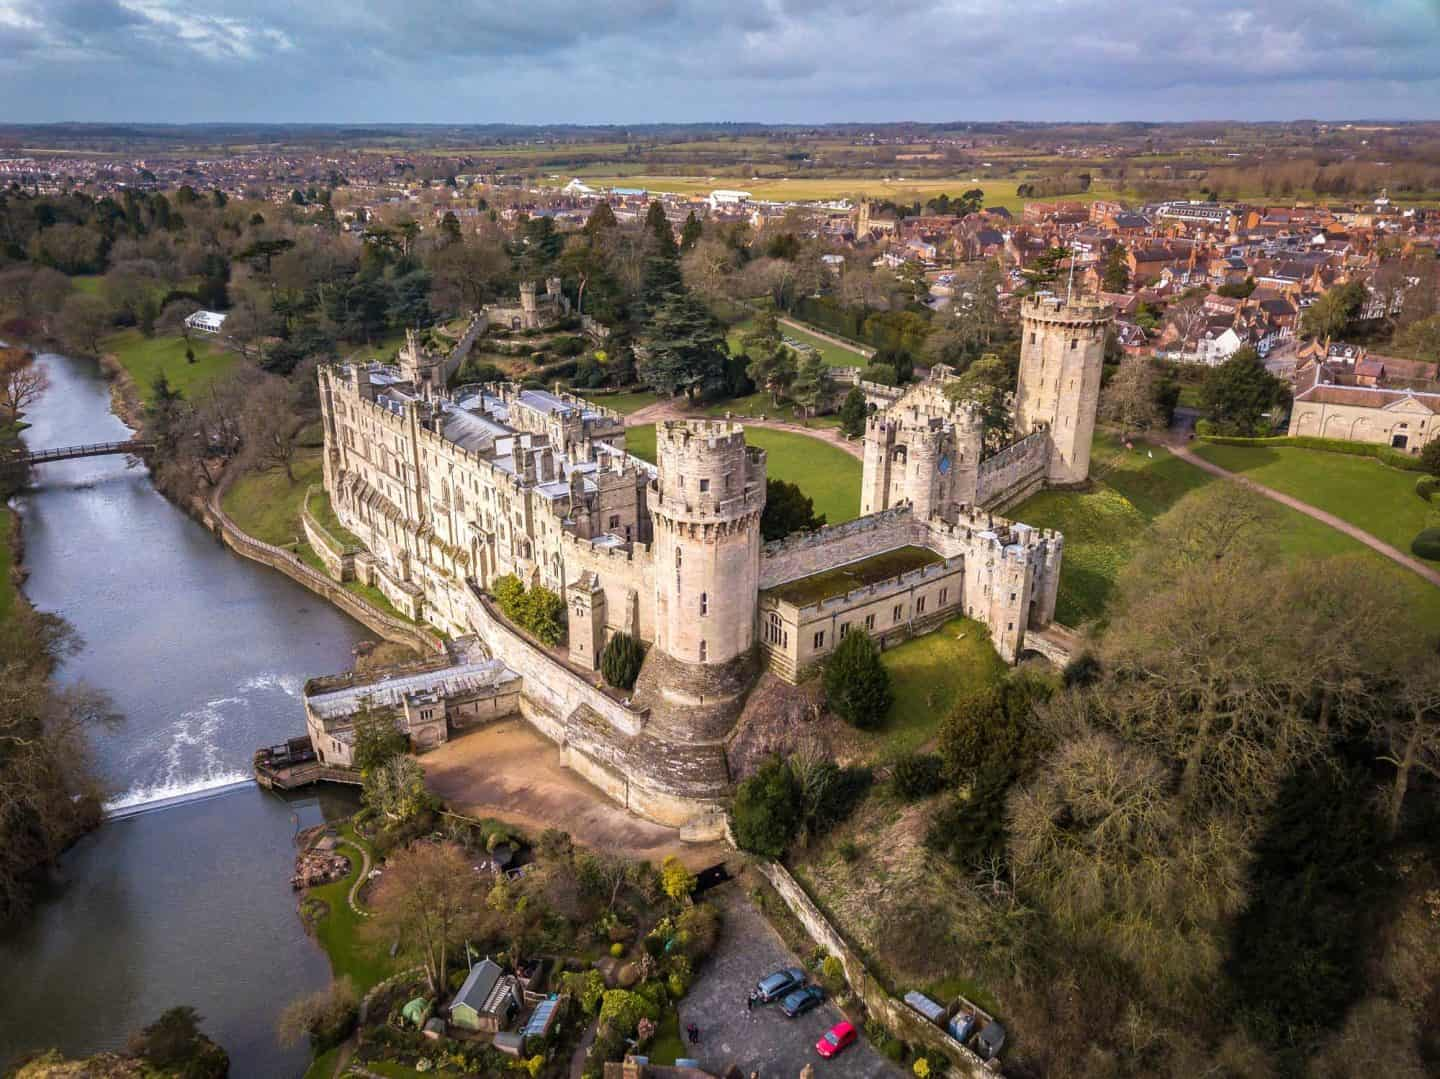 Aerial view of Warwick Castle, one of the best castles near London